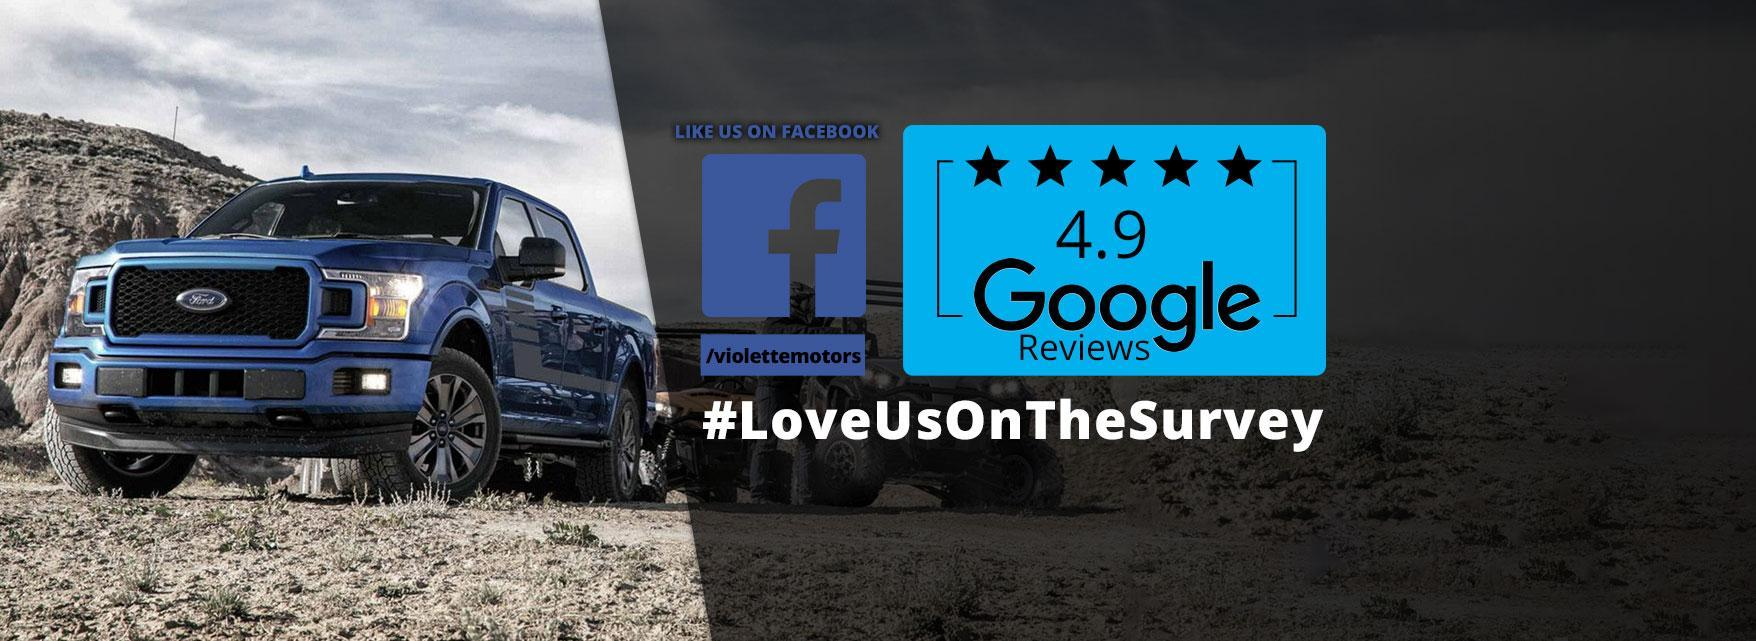 Like Us Google Facebook Violette Motors